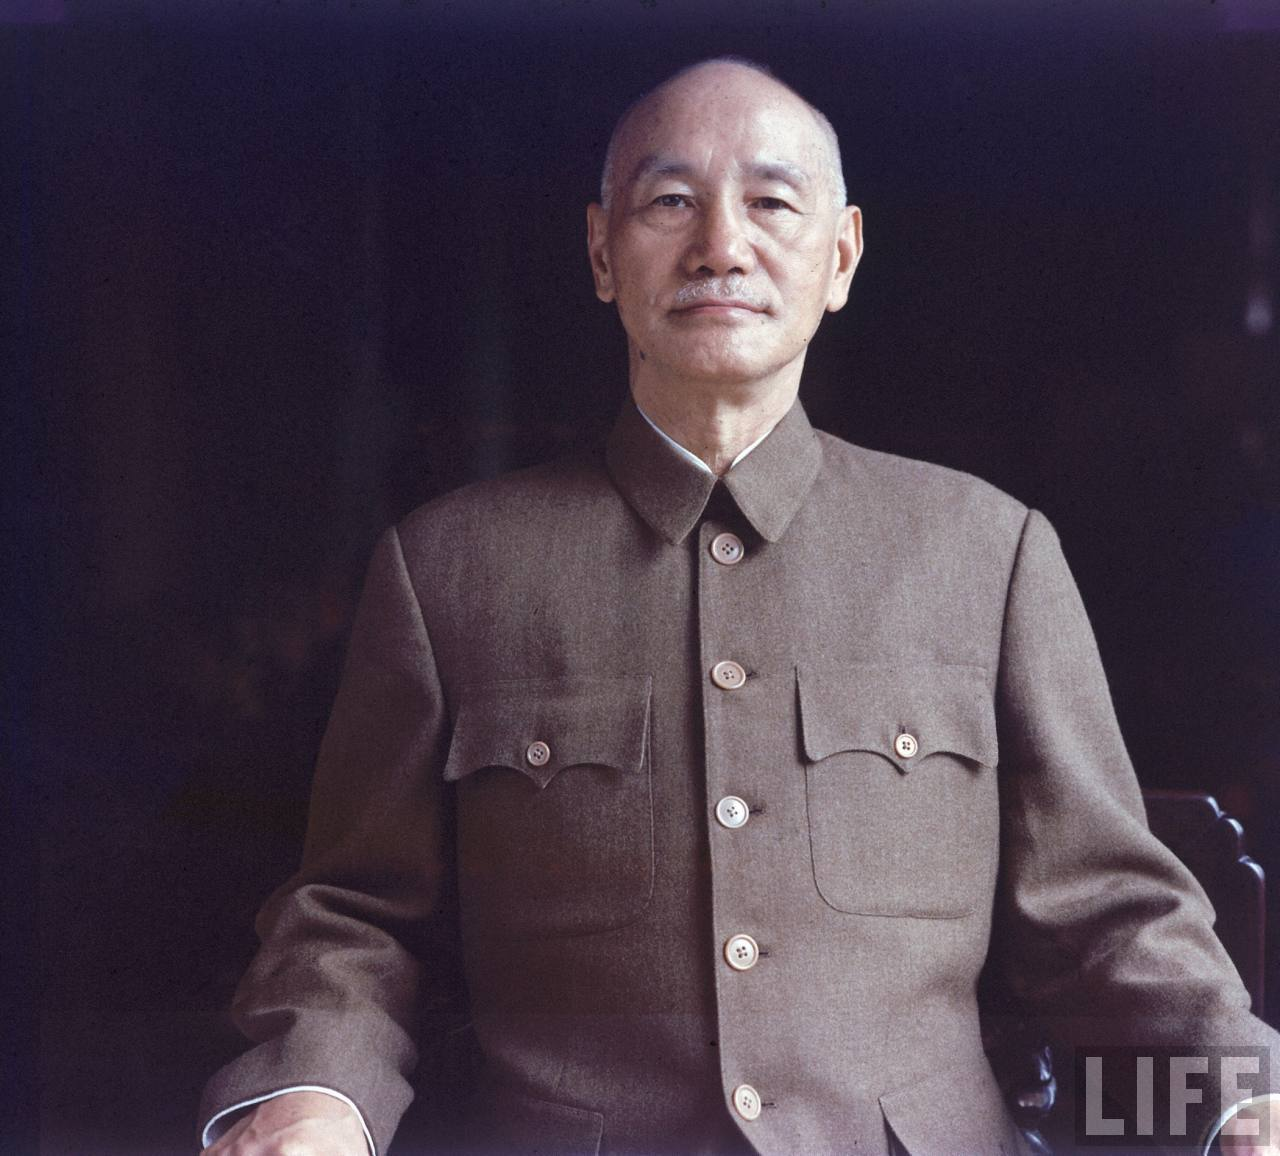 chiang kai shek essay The victory of mao zedong's ccp over president chiang kai-shek's guomindang  (nationalist) army was a stunning and unexpected event.